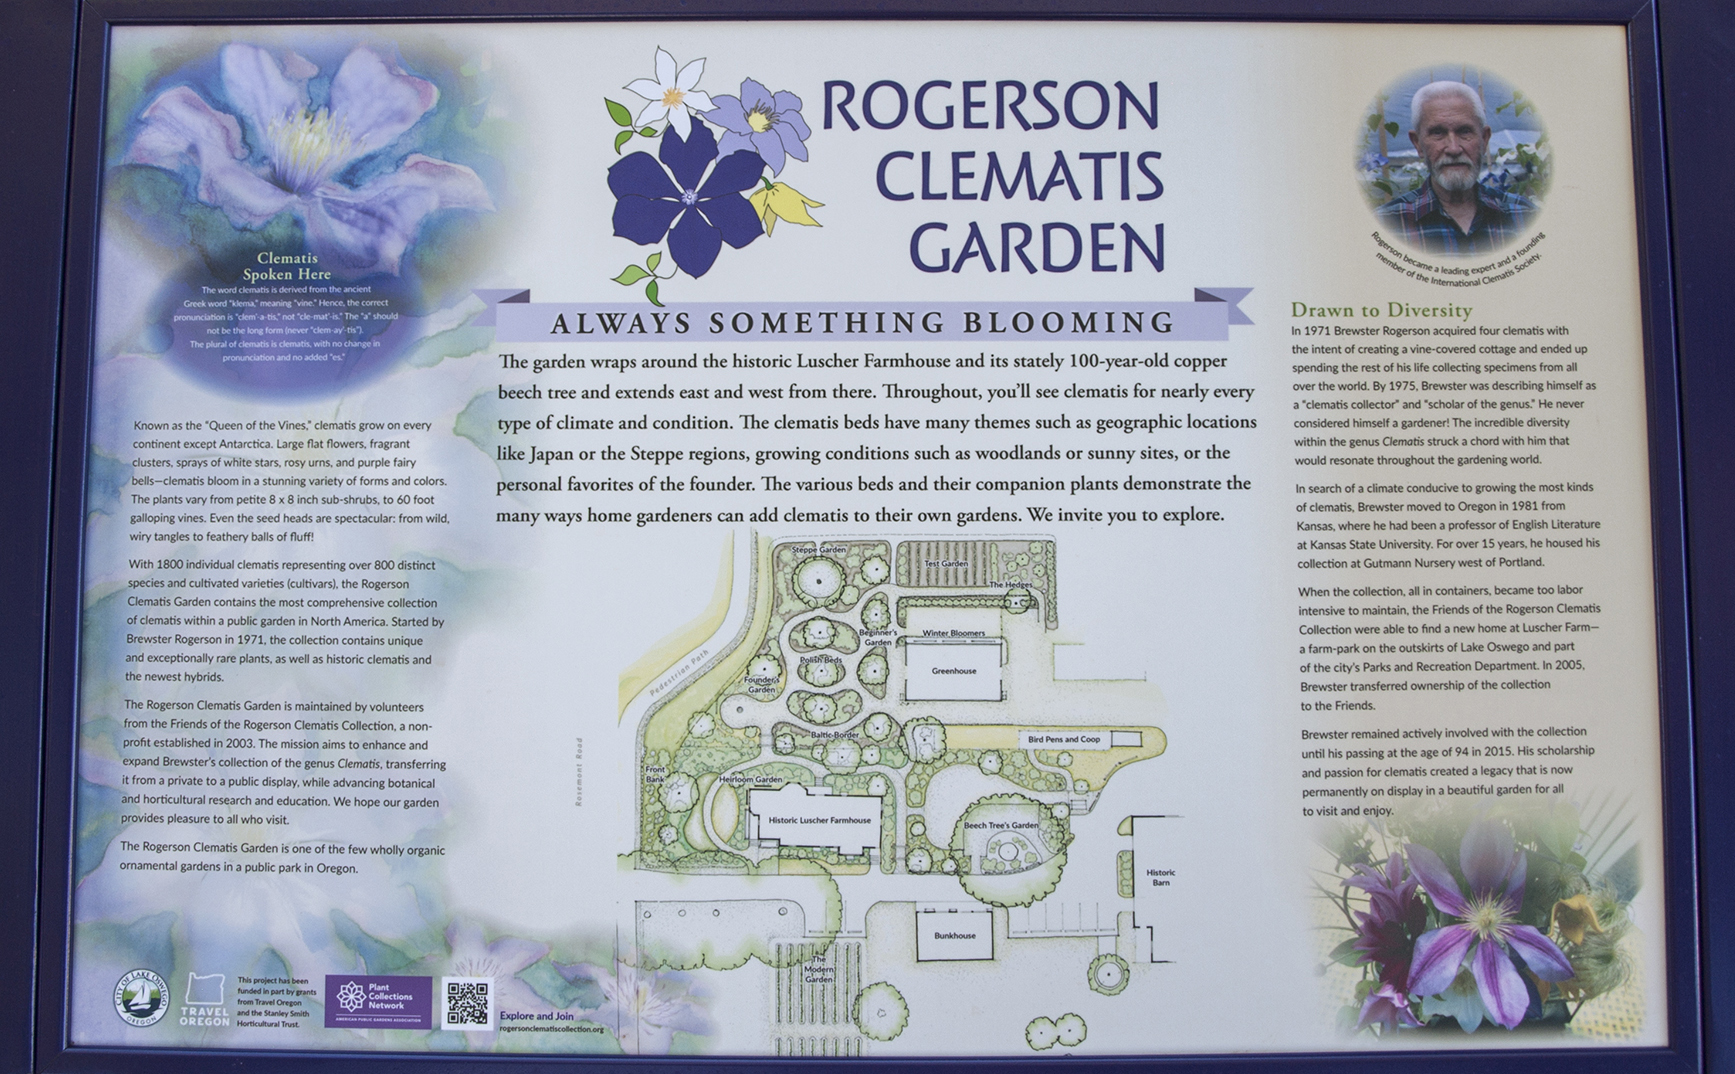 Rogerson Clematis Garden - Intro Panel Close-up